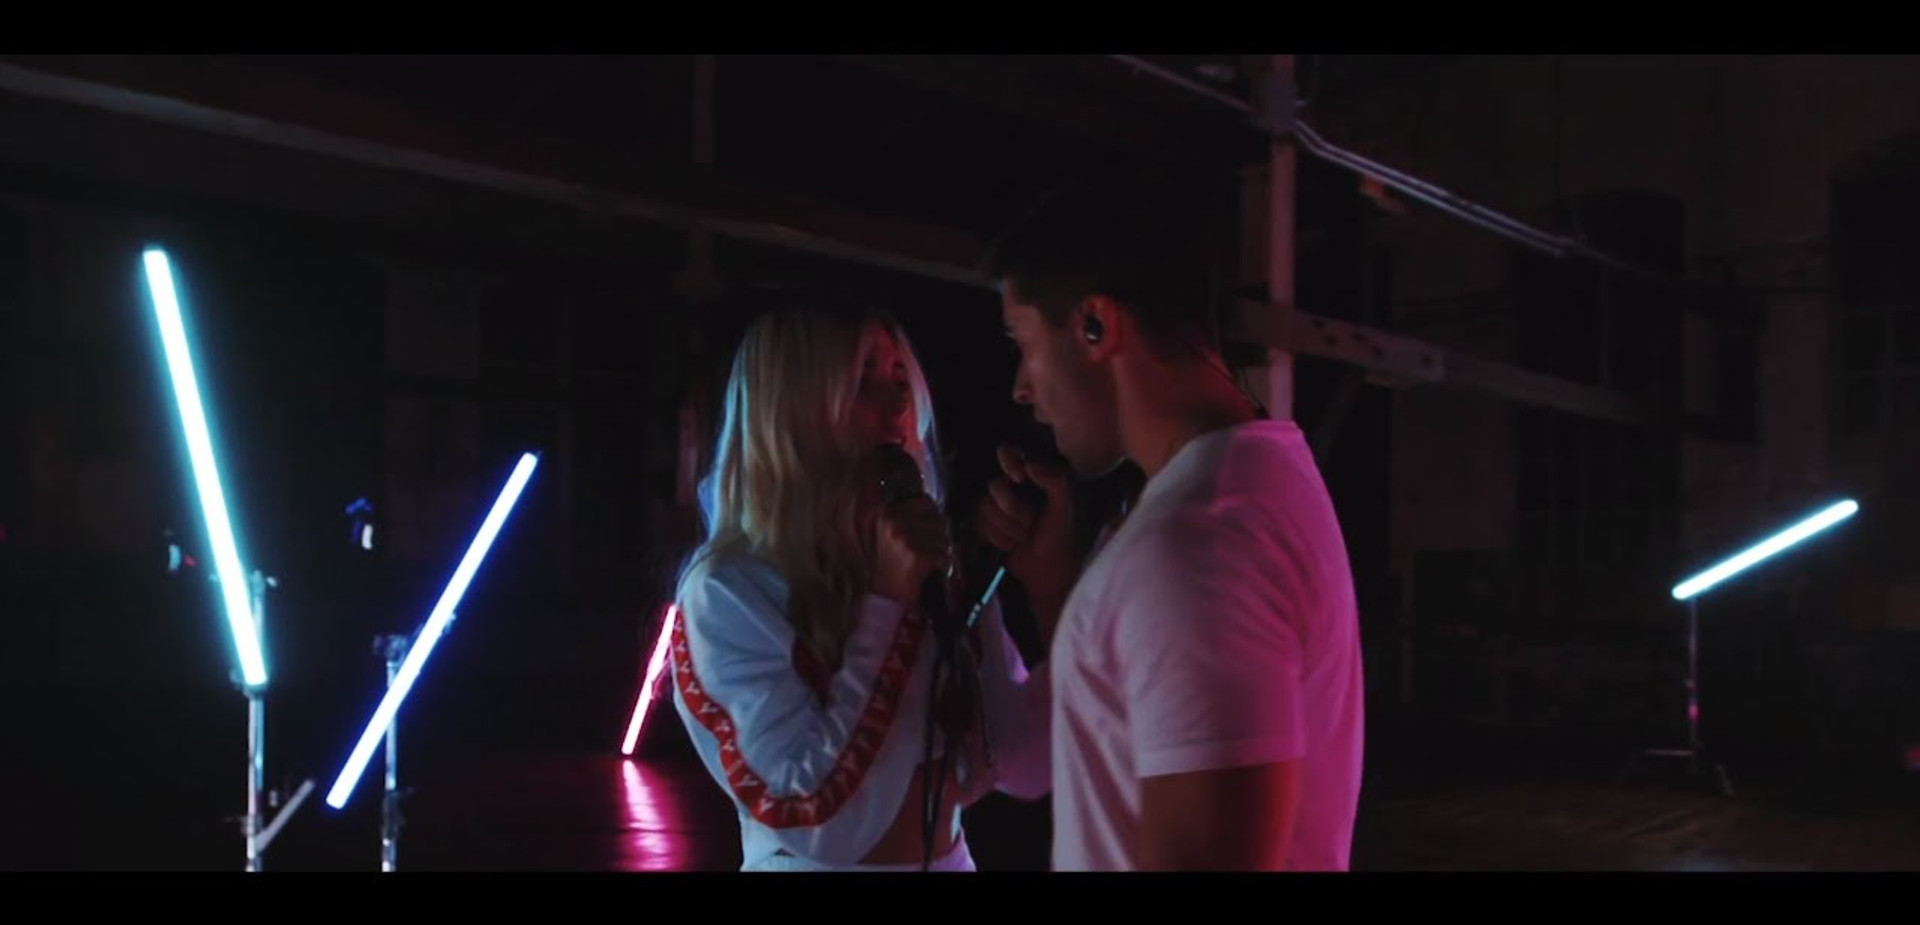 lara Mae & Jake Miller - Better Me Better You [Live Acoustic]